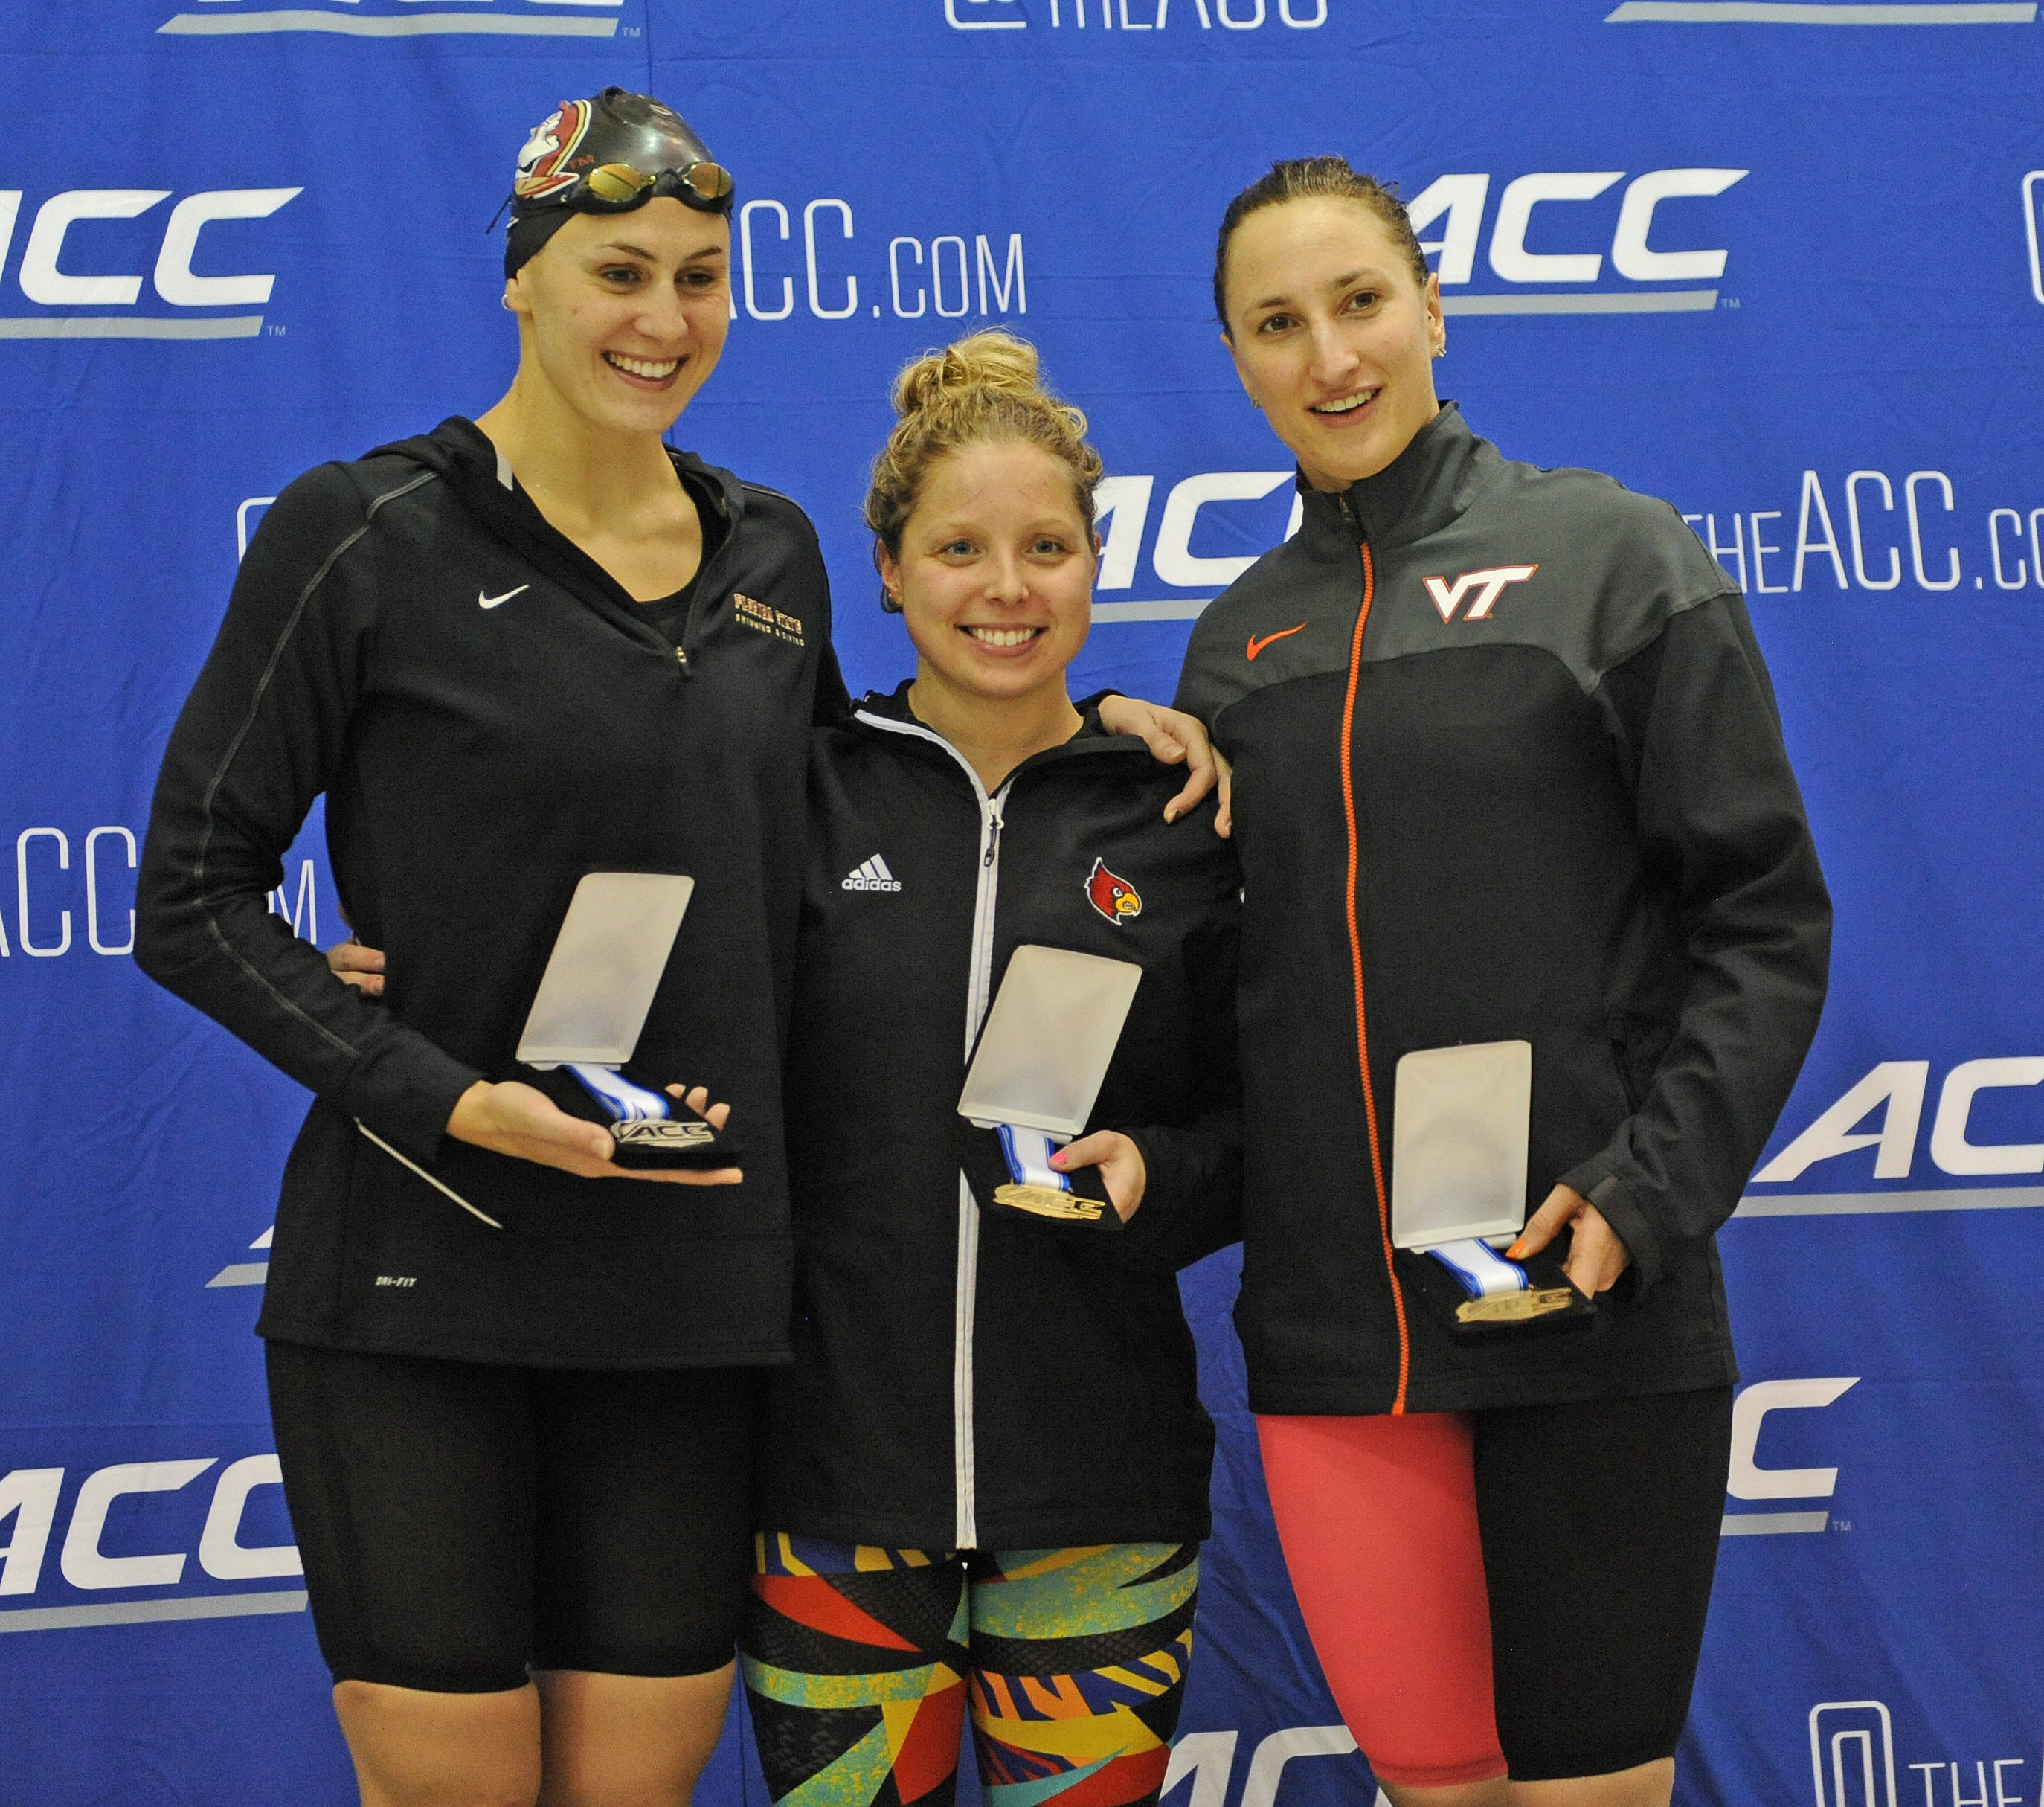 Chelsea Britt wins silver in the 200 fly and poses with the medalists - Mitch Whtie